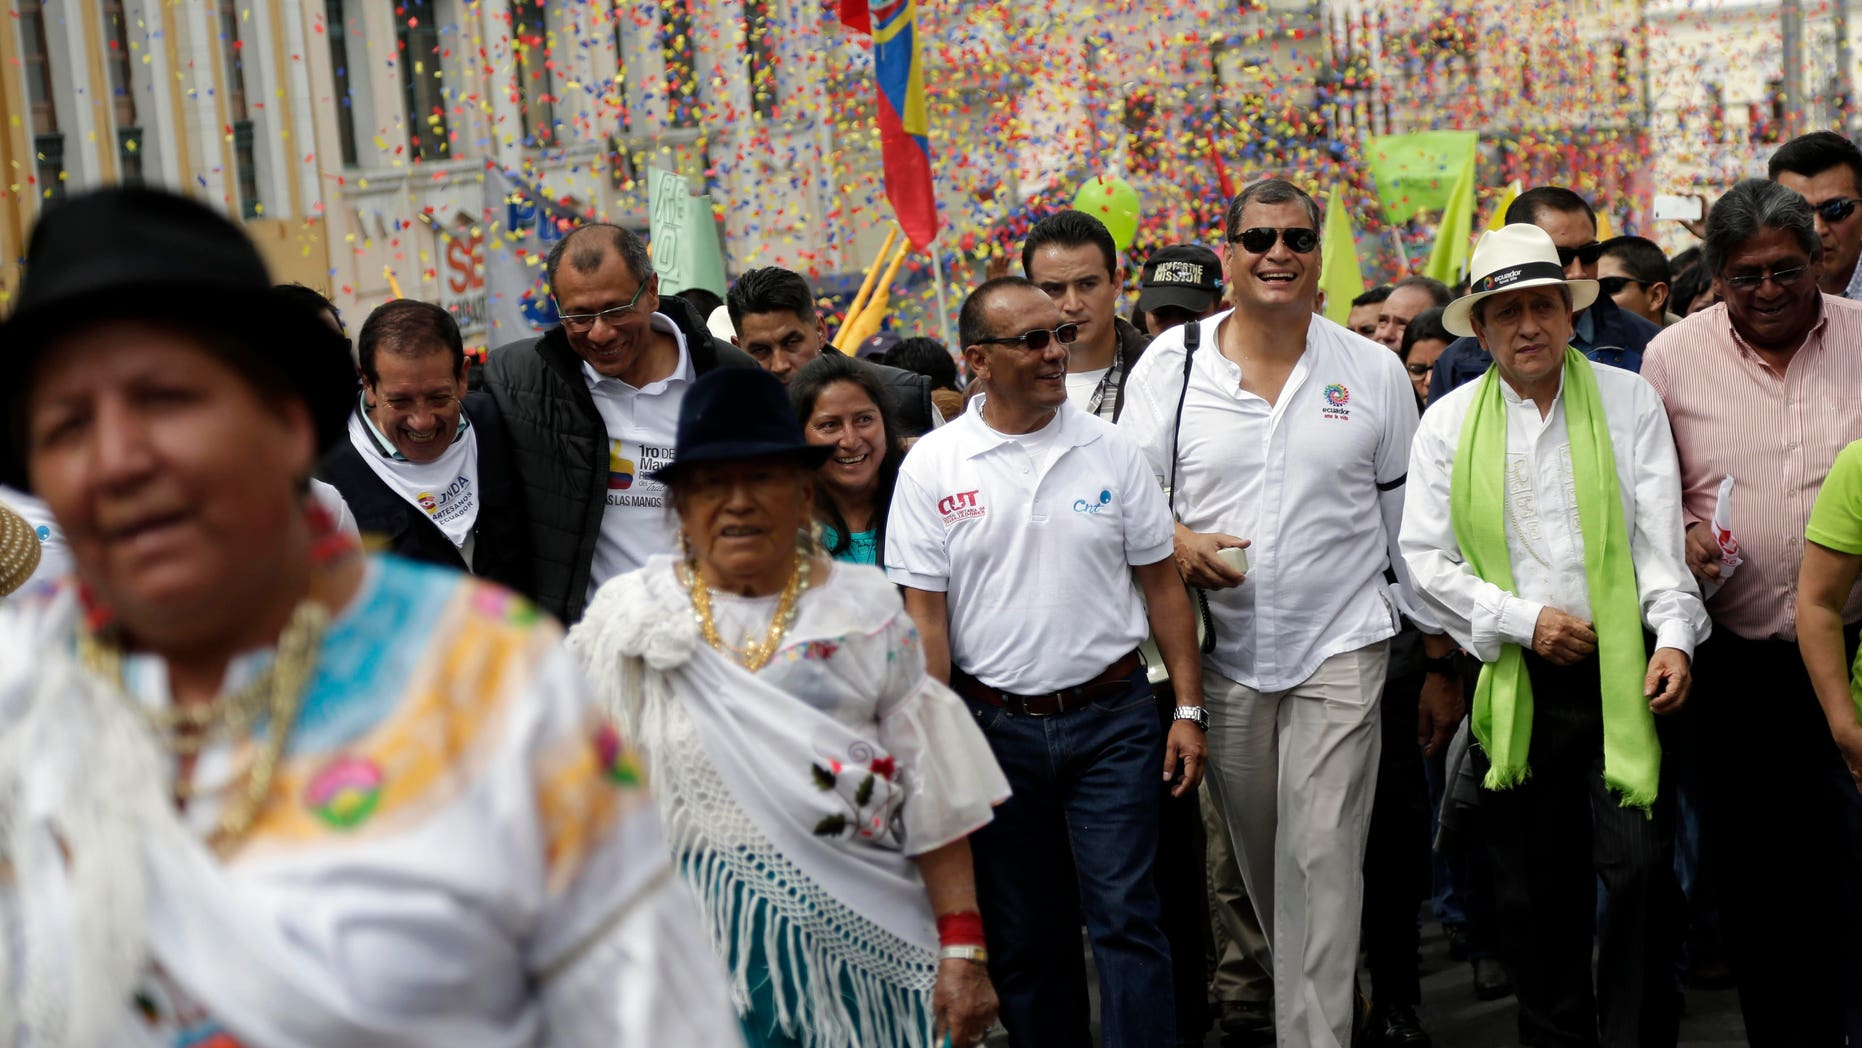 FILE - In this Friday, May 1, 2015, file photo, Ecuador's President Rafael Correa, third from the right, marches in the May Day parade in Quito, Ecuador. Ecuadors leader halted his motorcade when a 16-year-old appeared to make an obscene gesture at him, Correa got out and confronted the teenager. Officials say the boy was detained and later sentenced to 20 hours of community service for making offensive gestures at the president on May 1. (AP Photo/Dolores Ochoa, File)